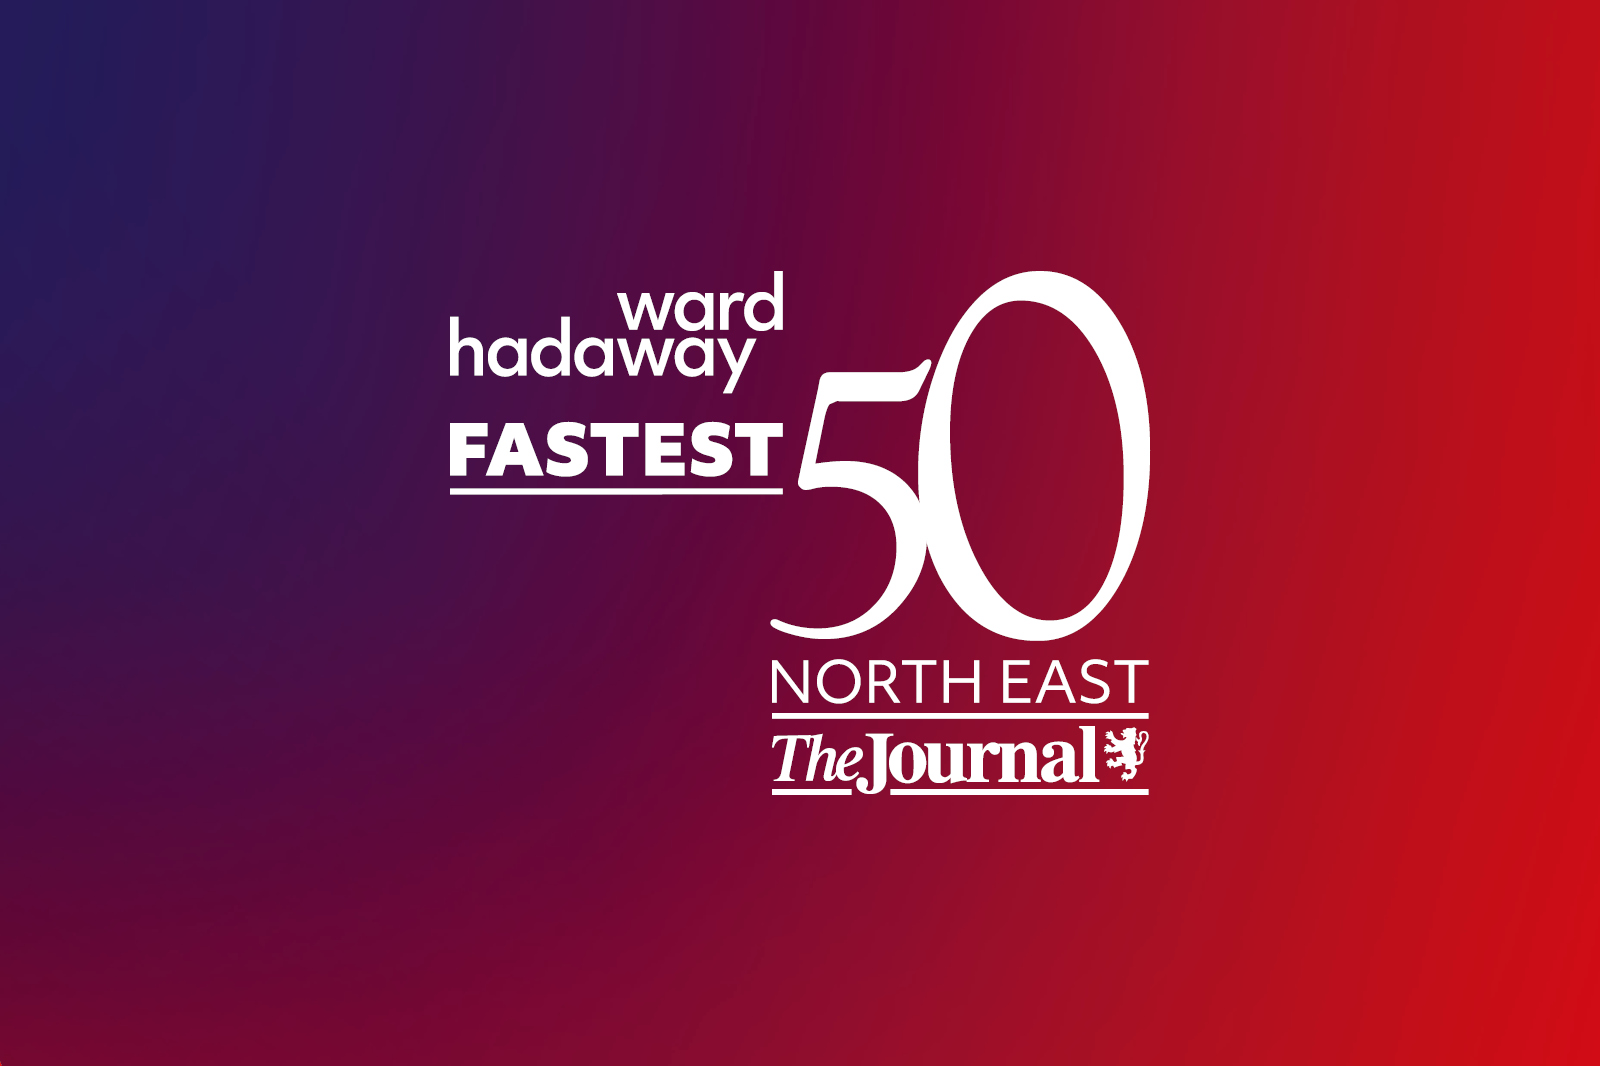 Ward Hadaway Fastest 50 North East The Journal